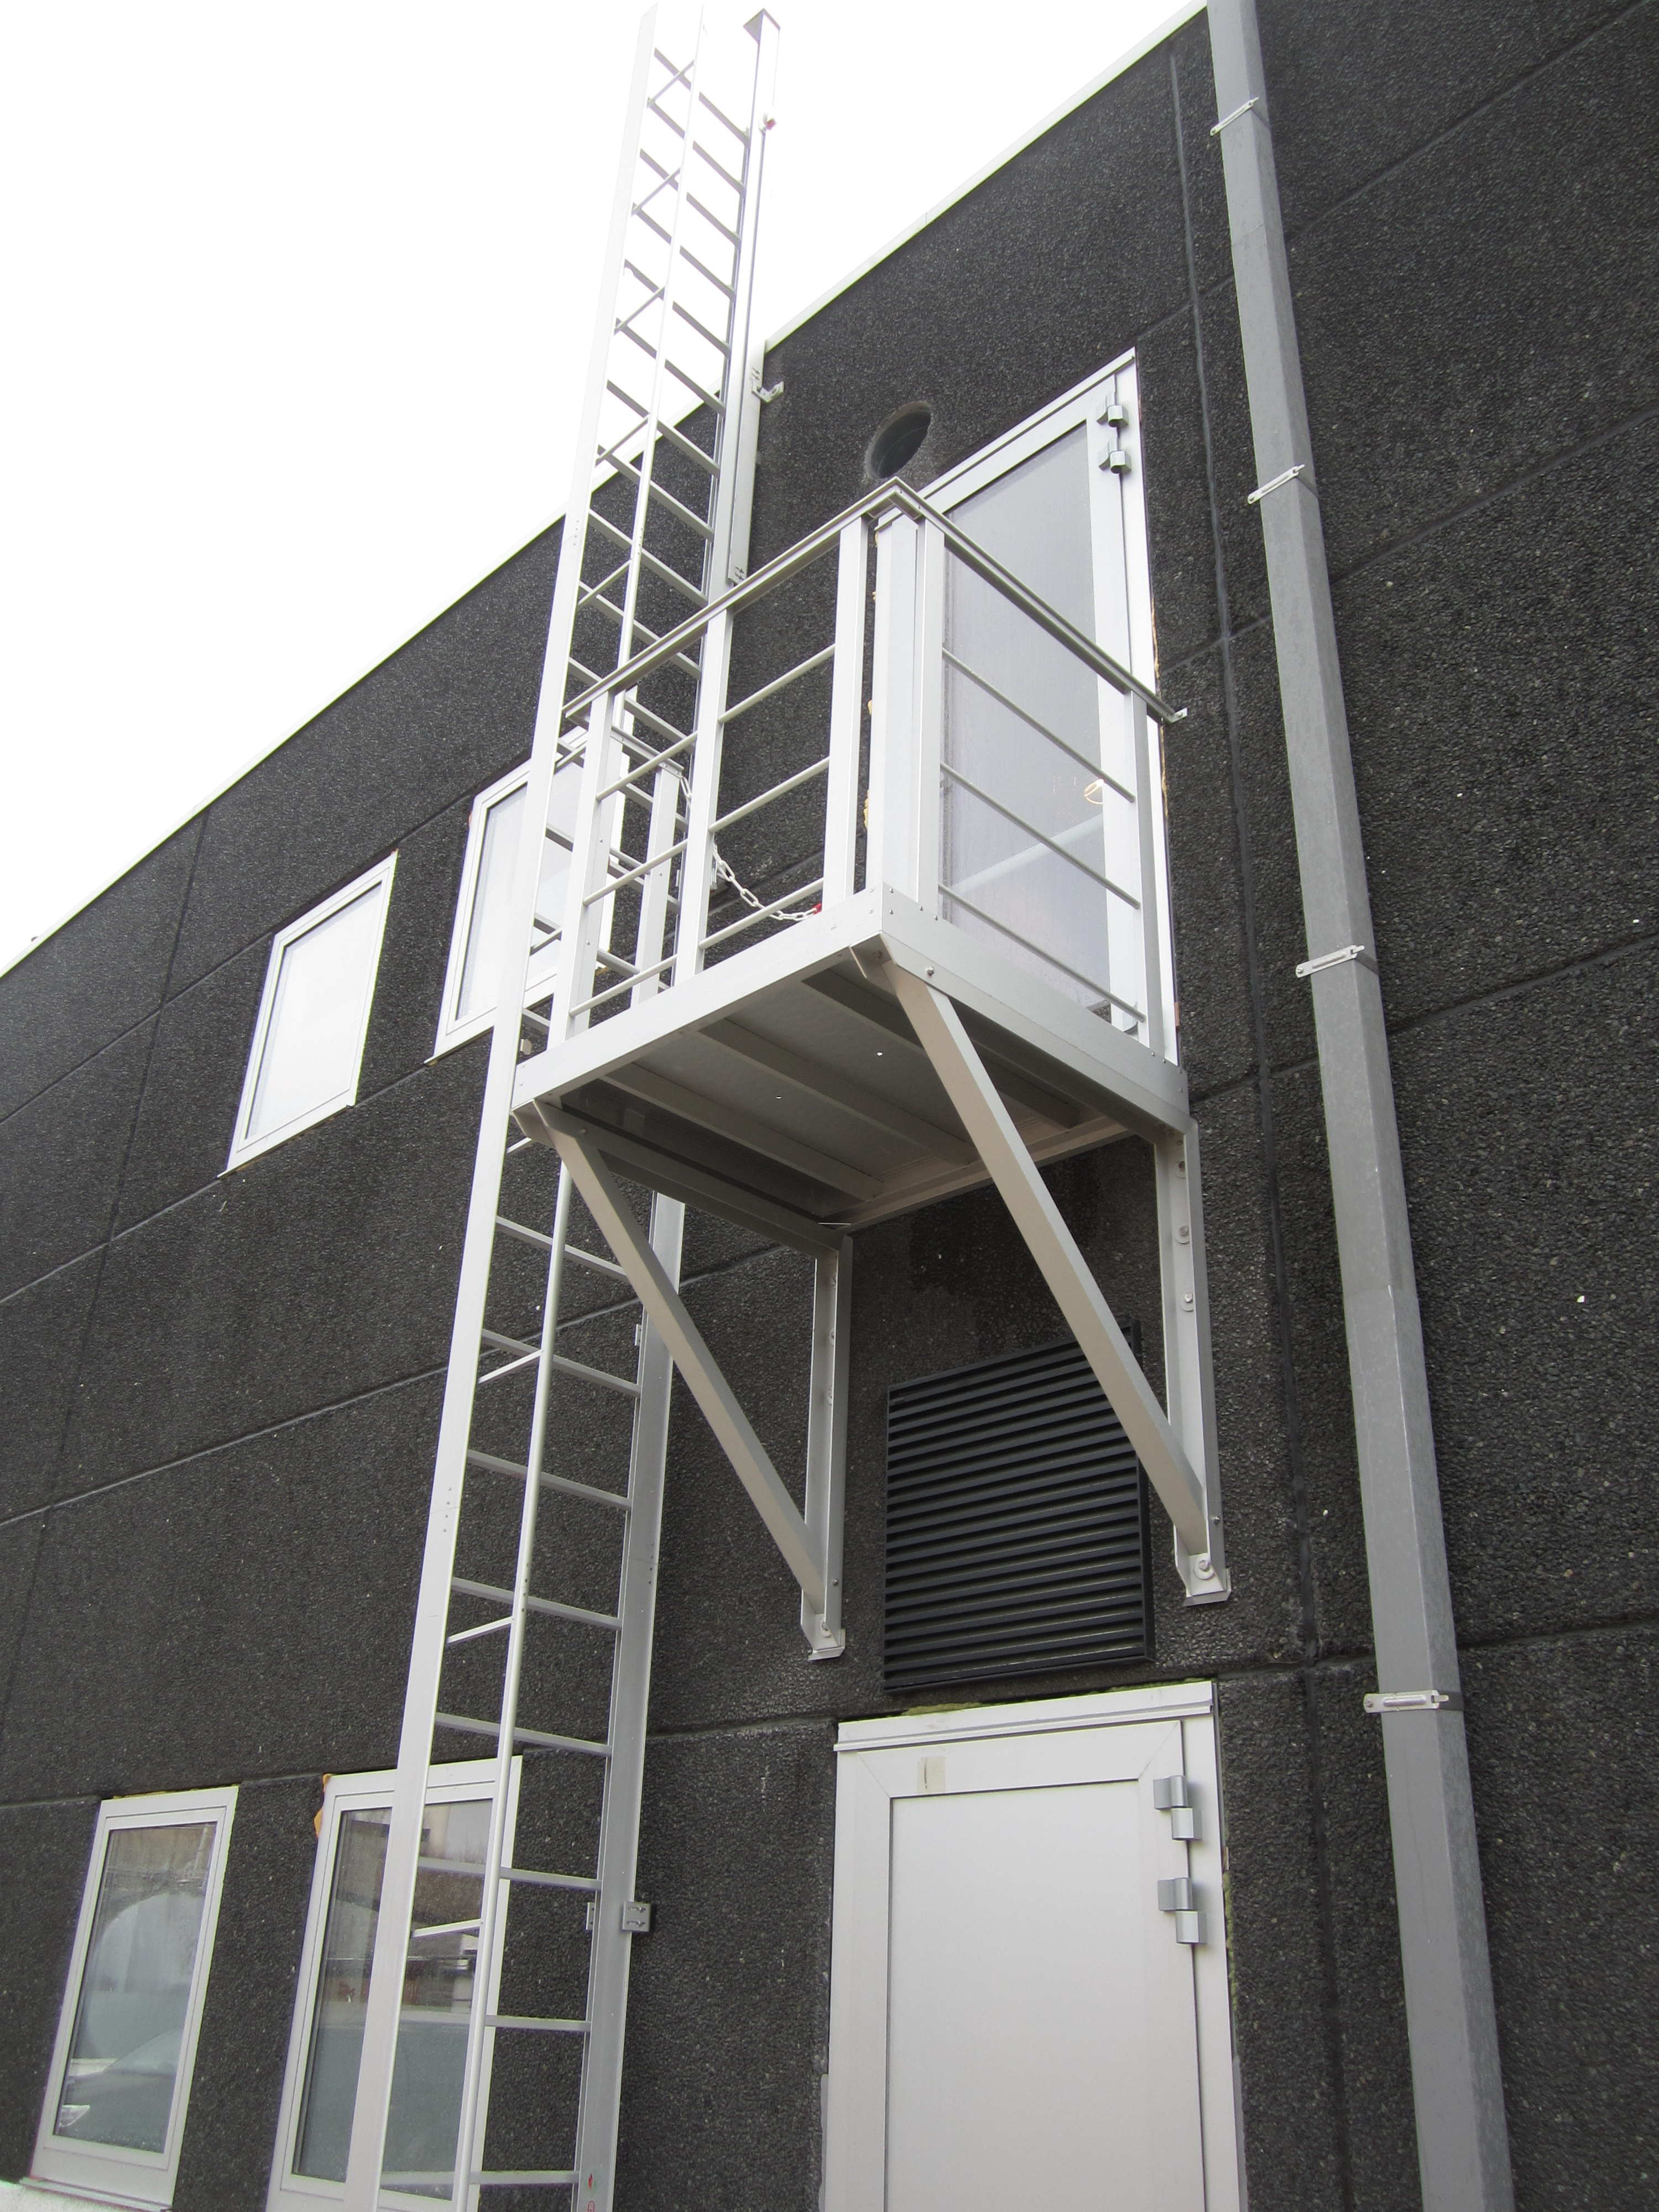 The JOMY Retractable Ladder is ideally suited for Access, Maintenance, and Evacuation